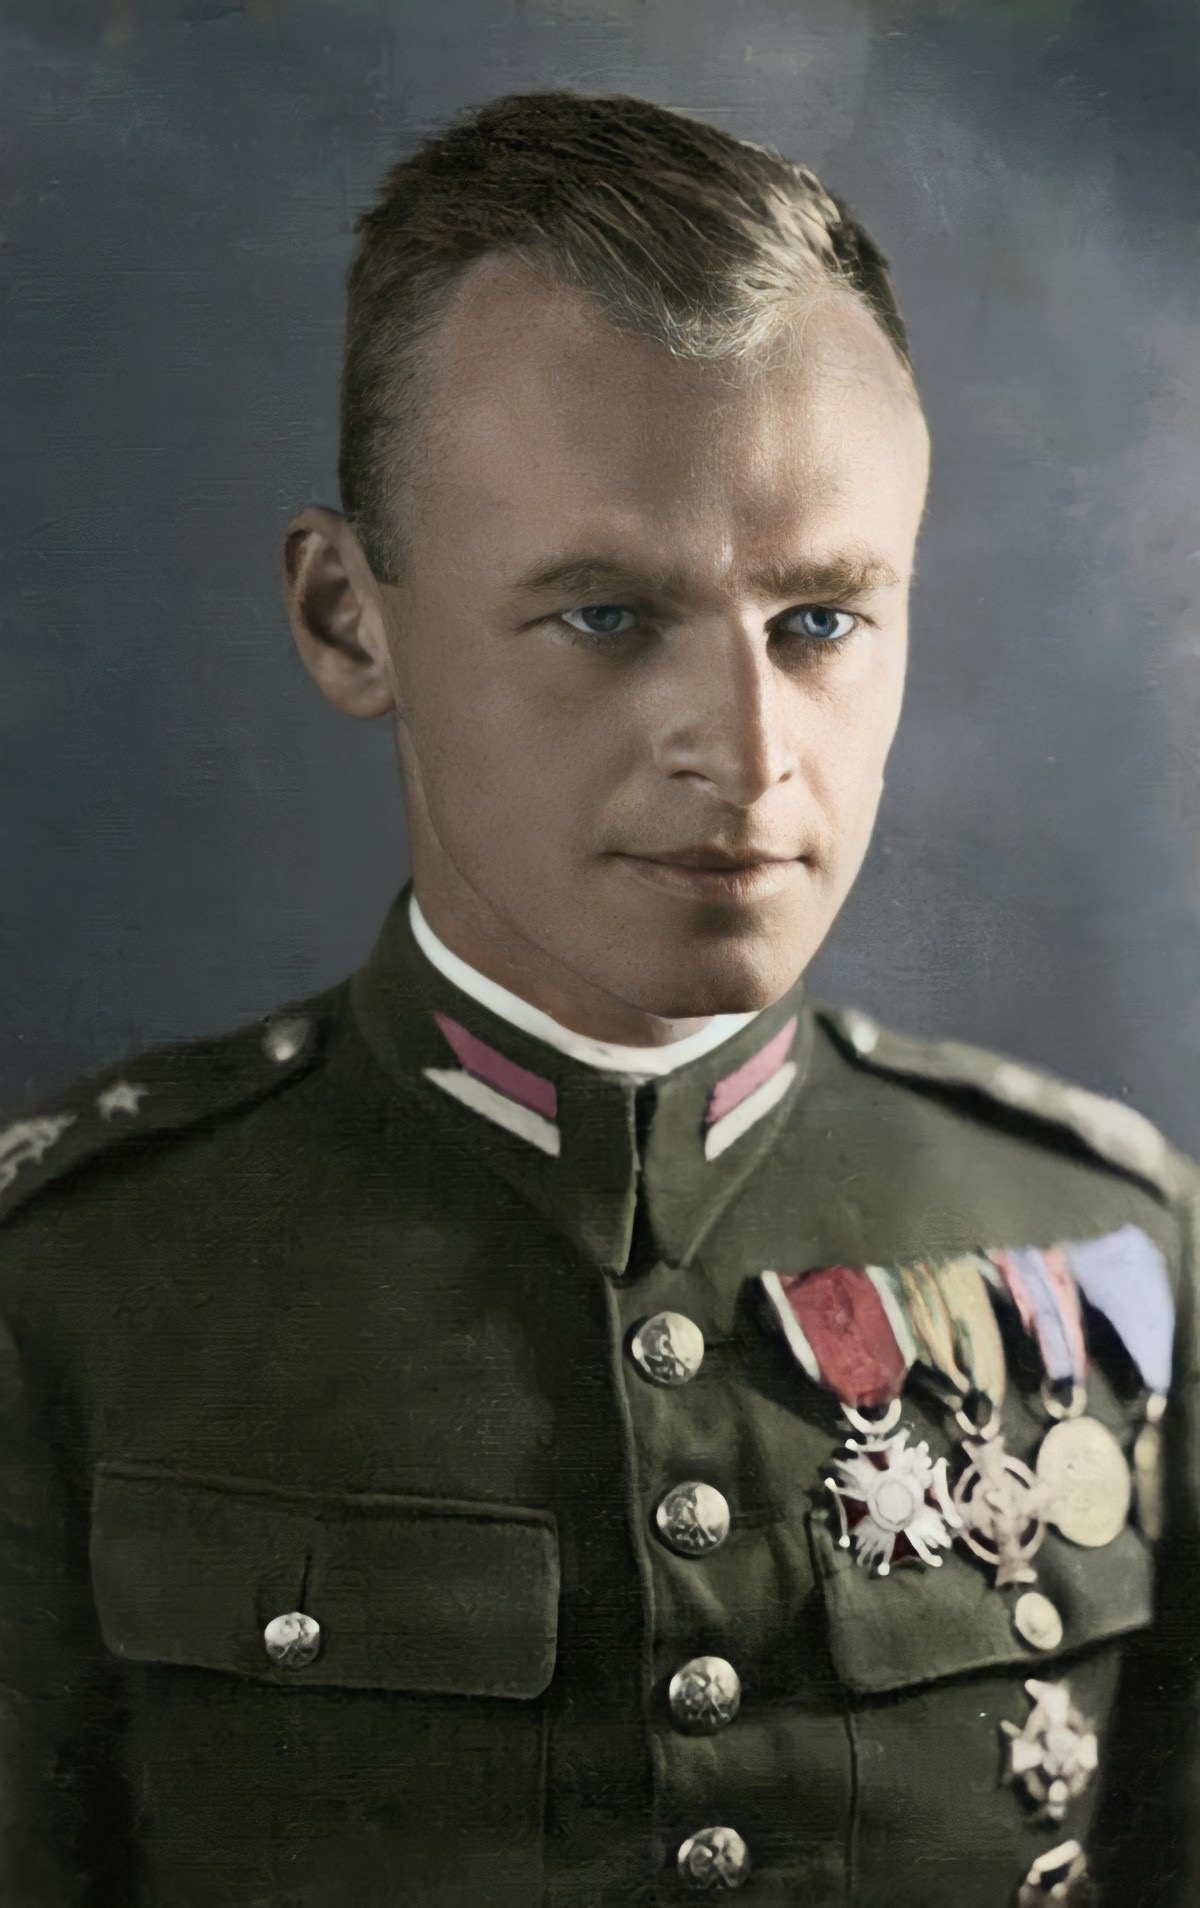 https://upload.wikimedia.org/wikipedia/commons/d/d5/Witold_Pilecki_in_color.jpg